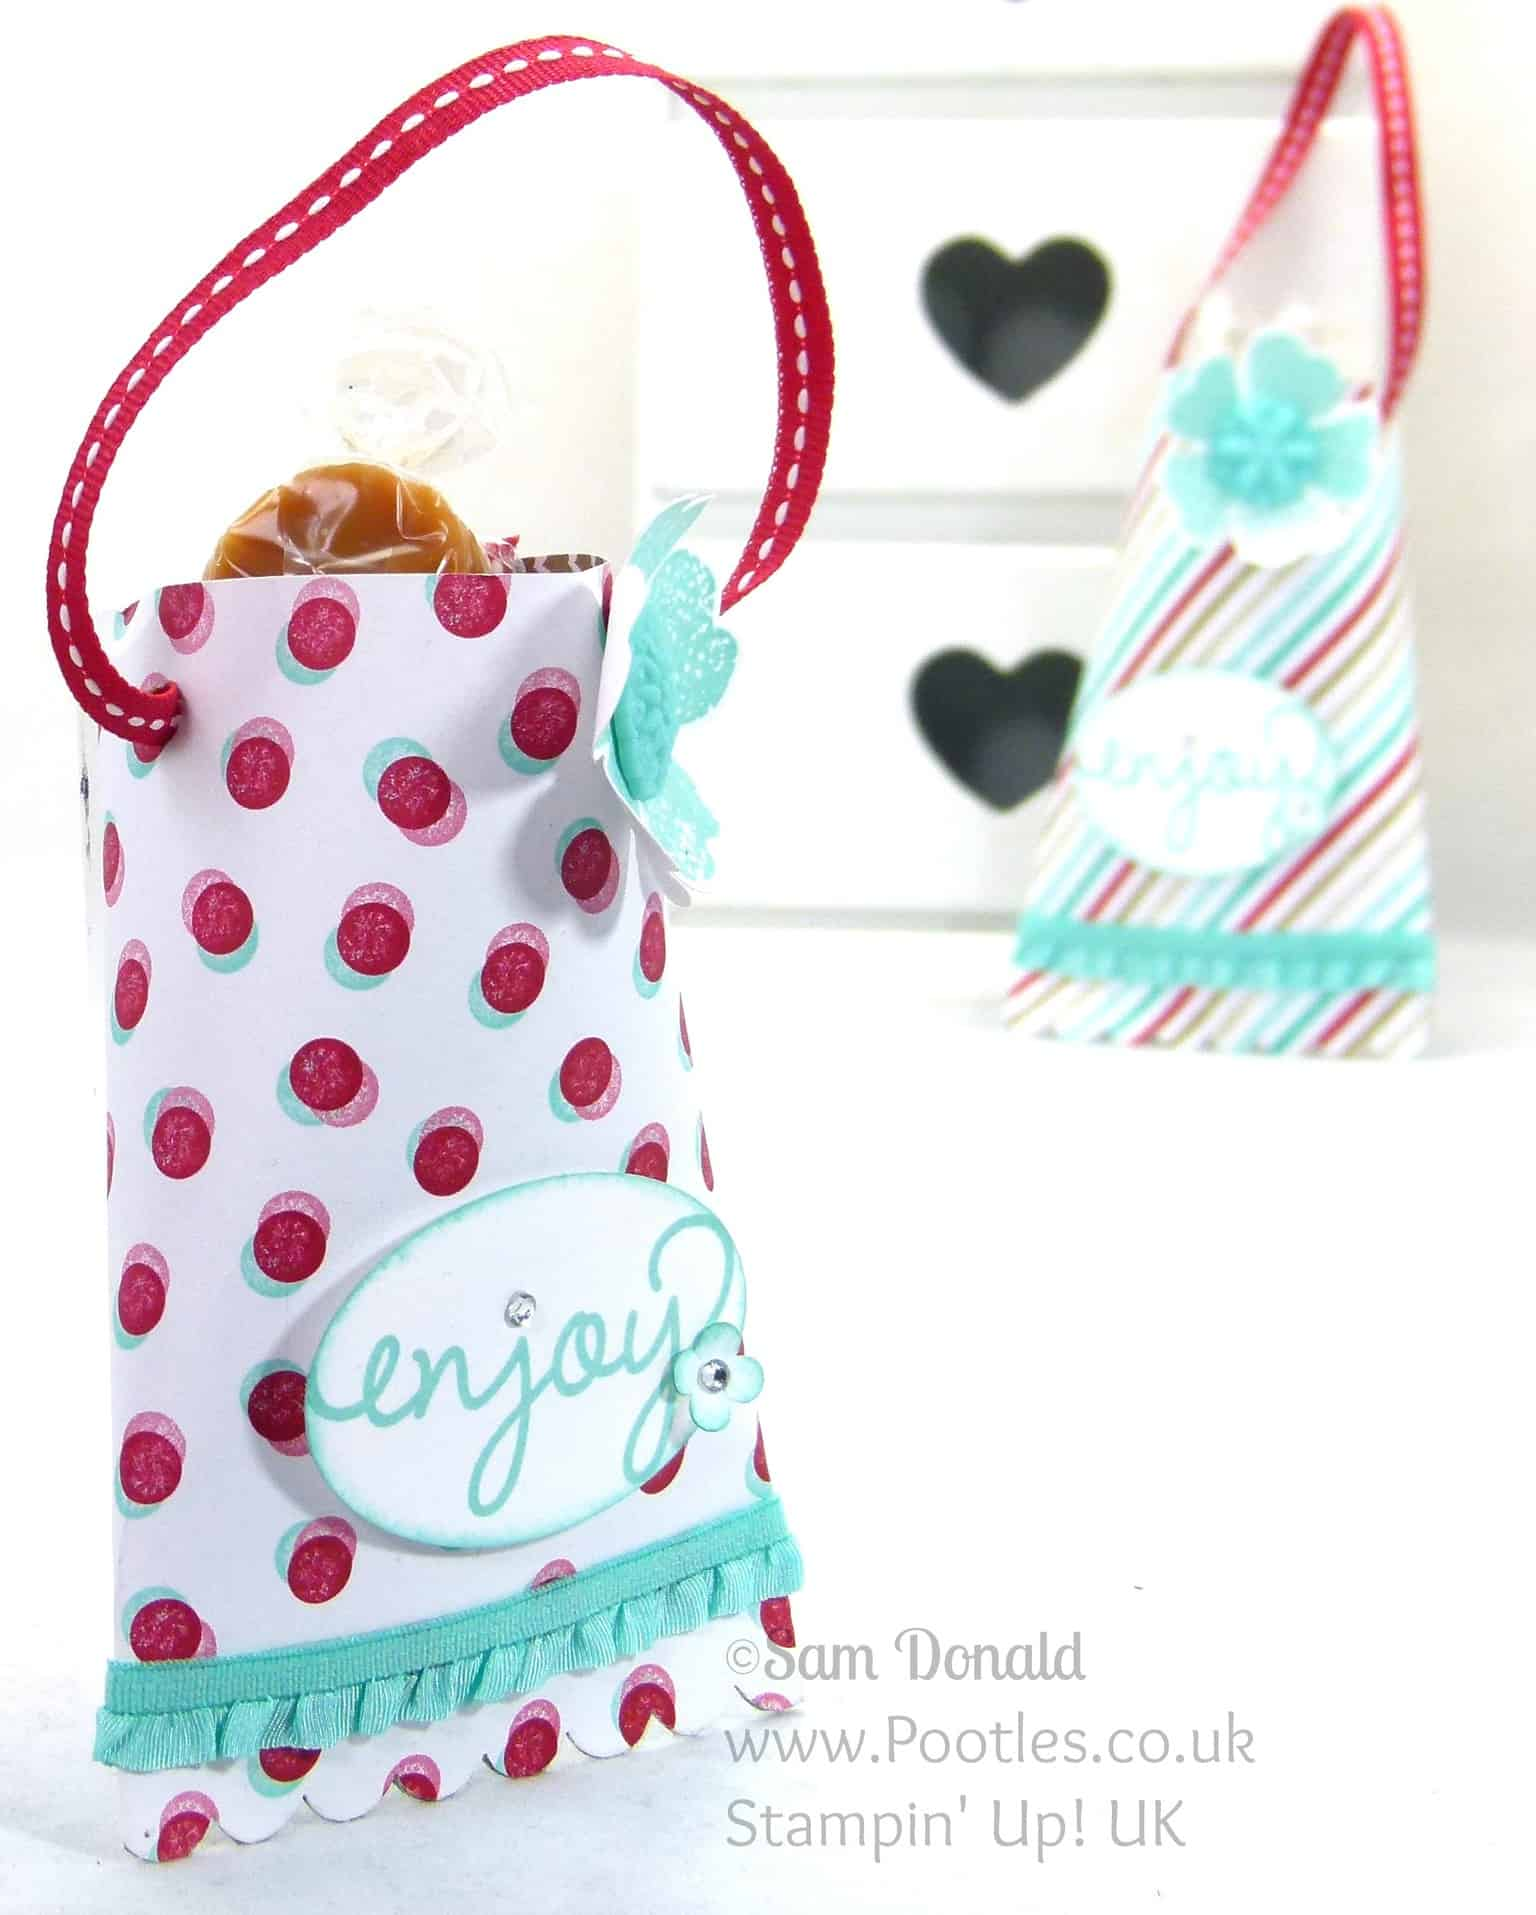 POOTLES Stampin' Up! UK Hanging Treat Pouch Video Tutorial